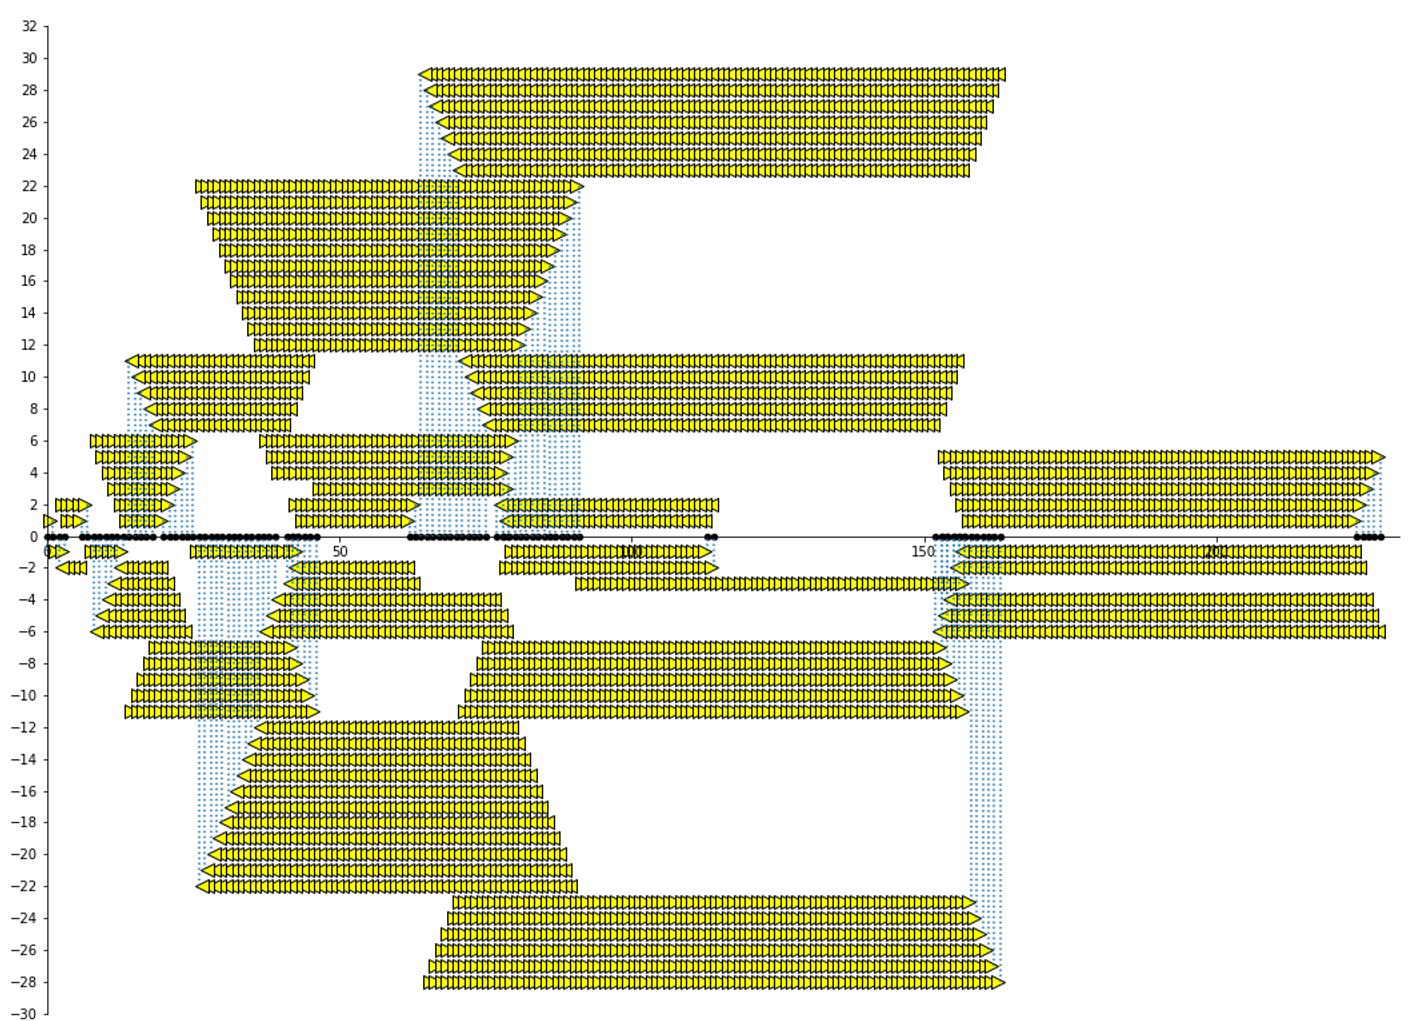 First 100 terms of Recamán sequence plotted with digital lemon slices